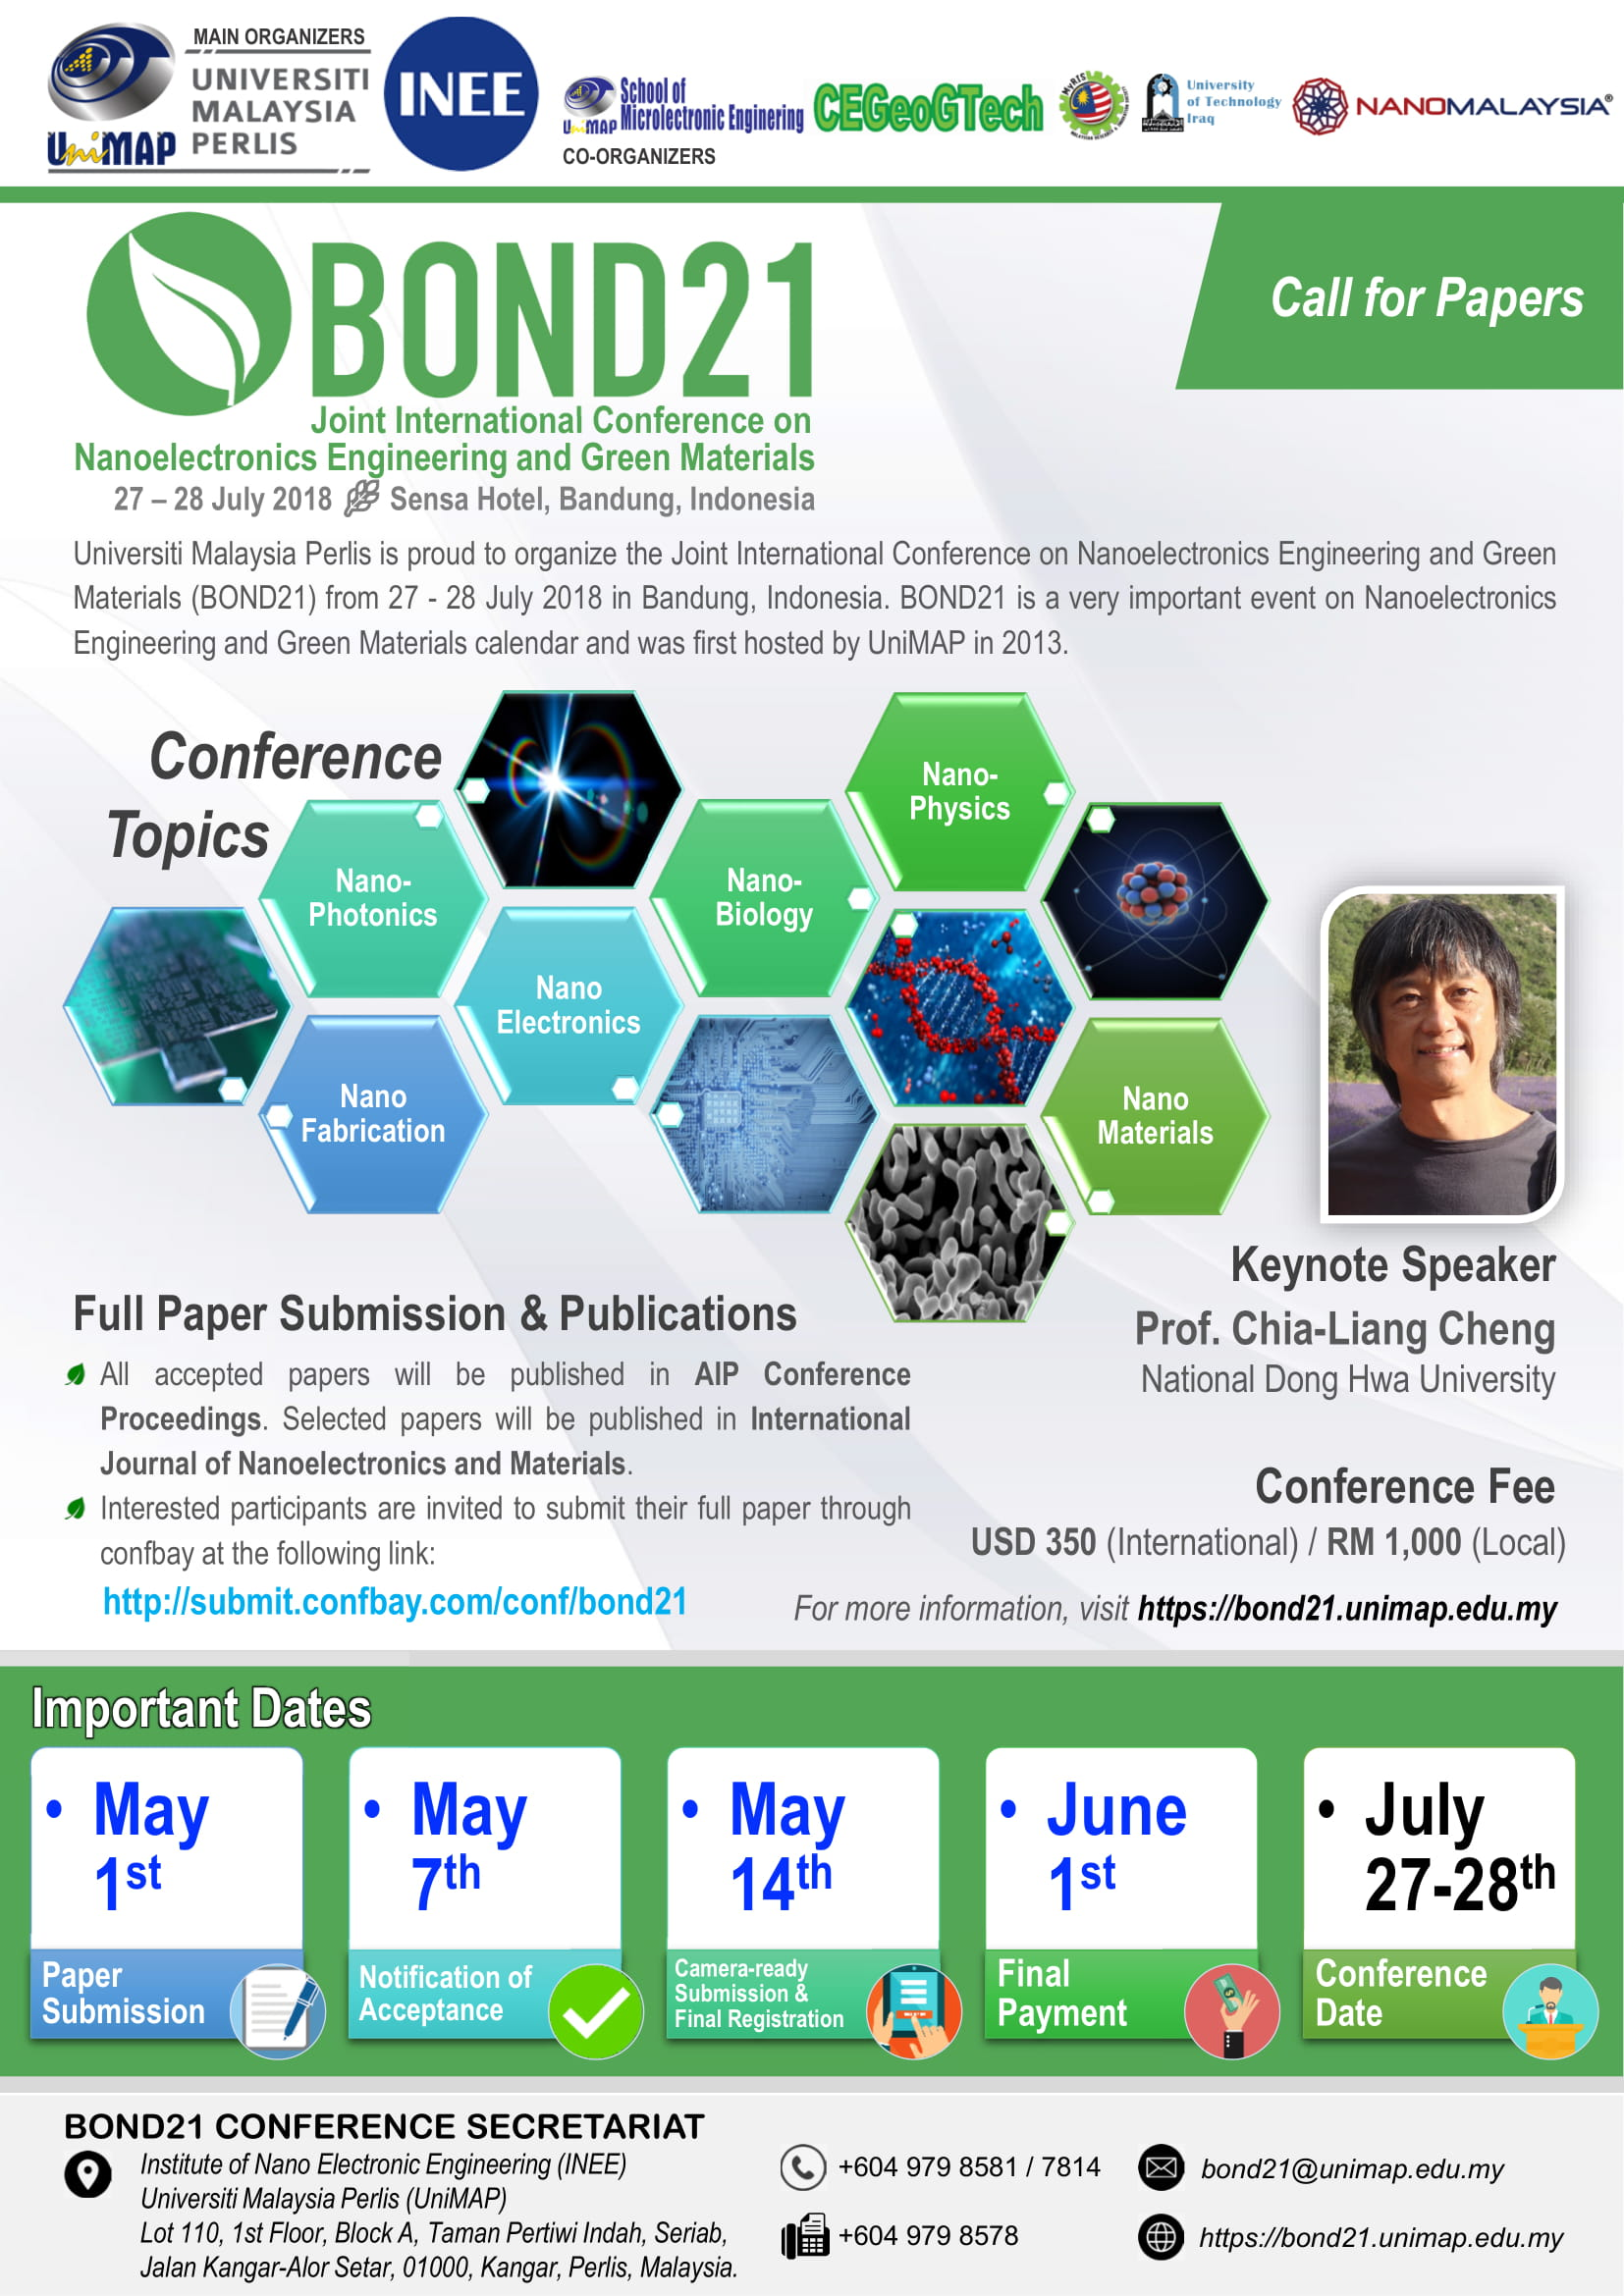 BOND21 Joint International Conference on Nanoelectronics Engineering and Green Materials